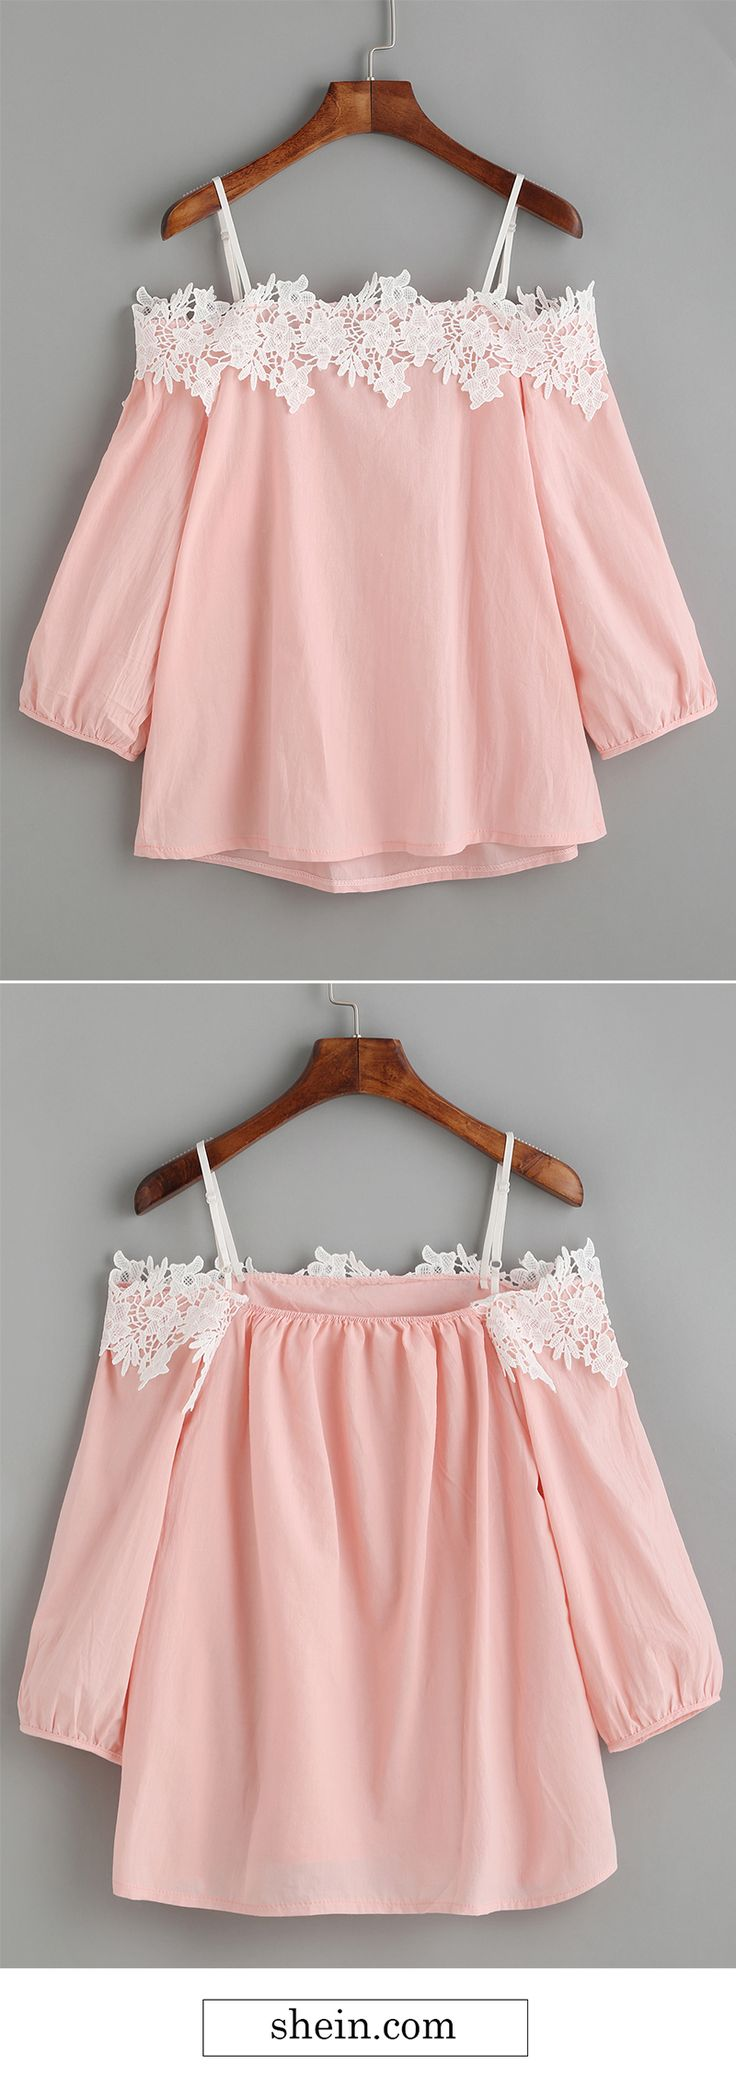 Pink embroidery lace applique cold shoulder blouse.